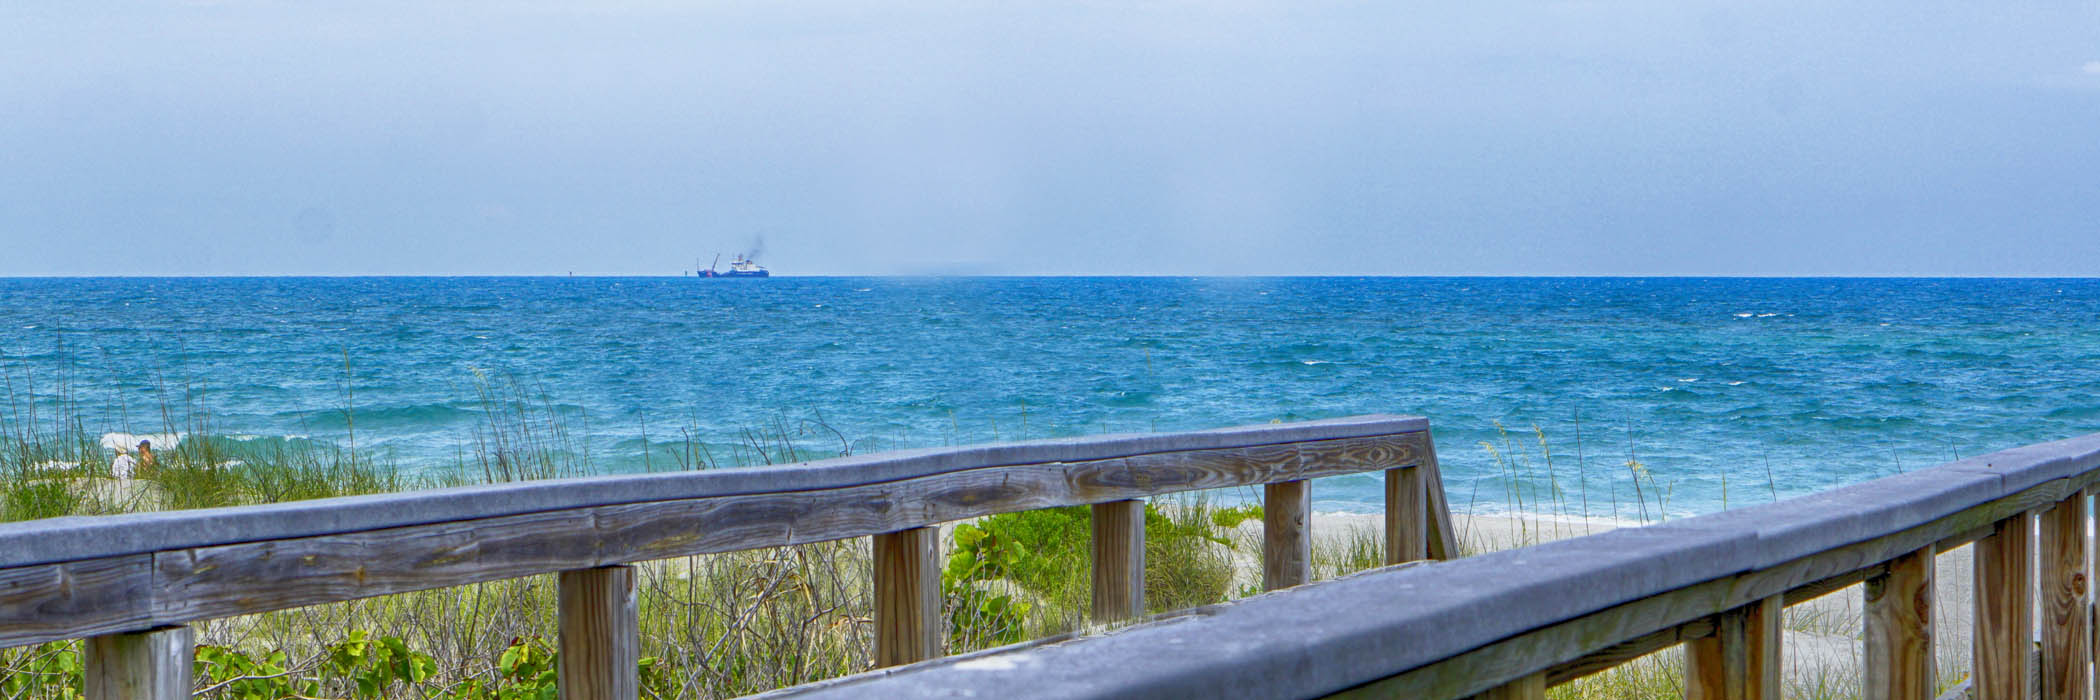 Cape Canaveral Beach Florida The Best Beaches In World